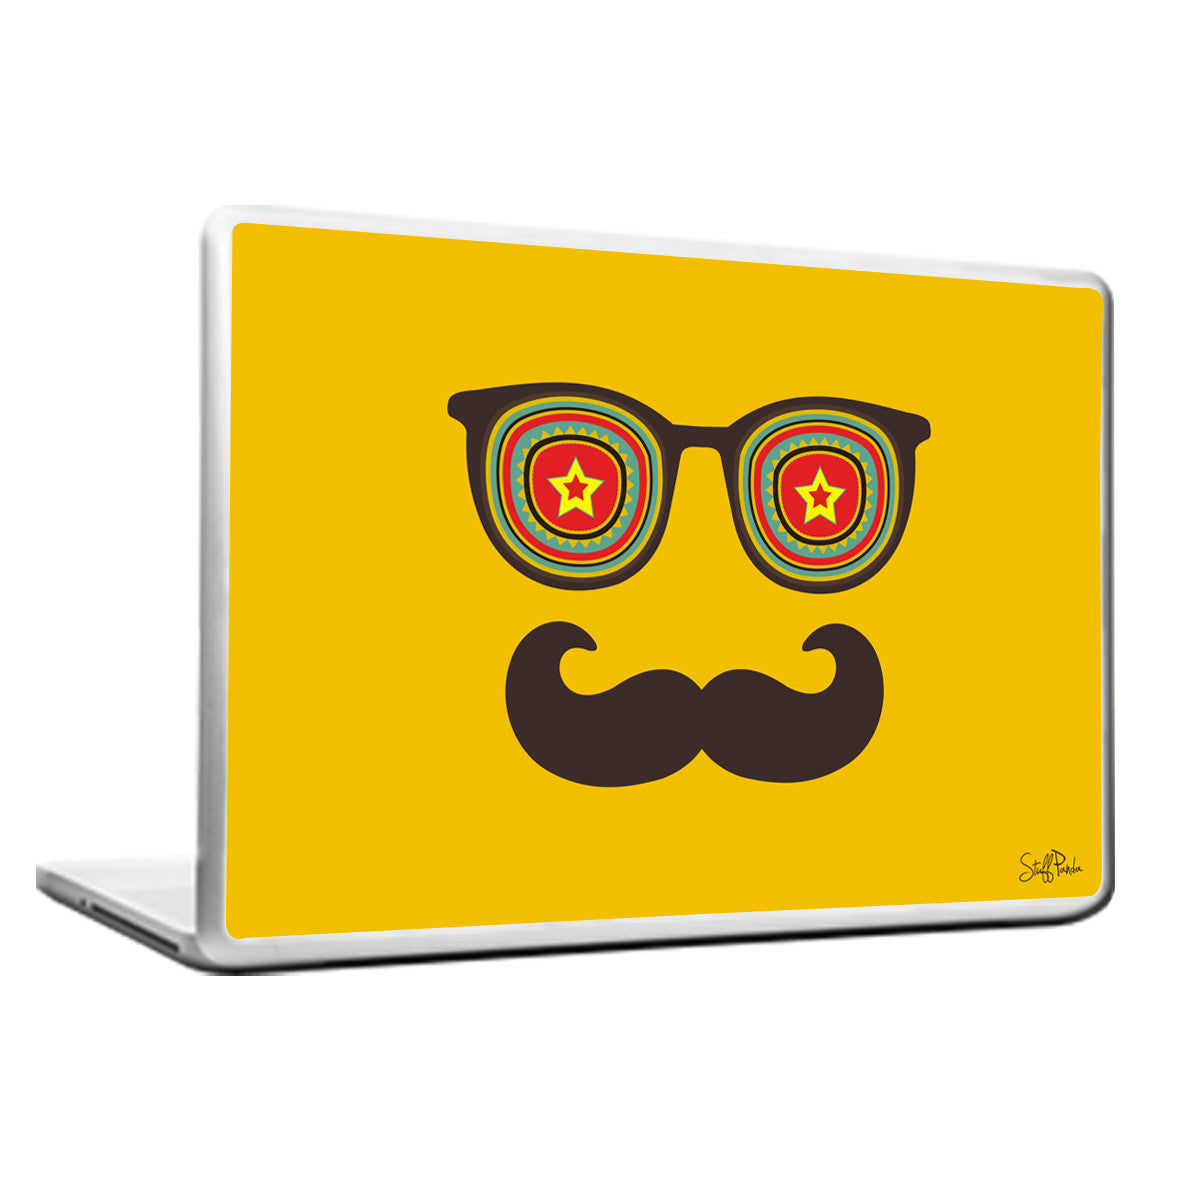 Cool Abstract Moustache star Laptop cover skin vinyl decals - stuffpanda - 1